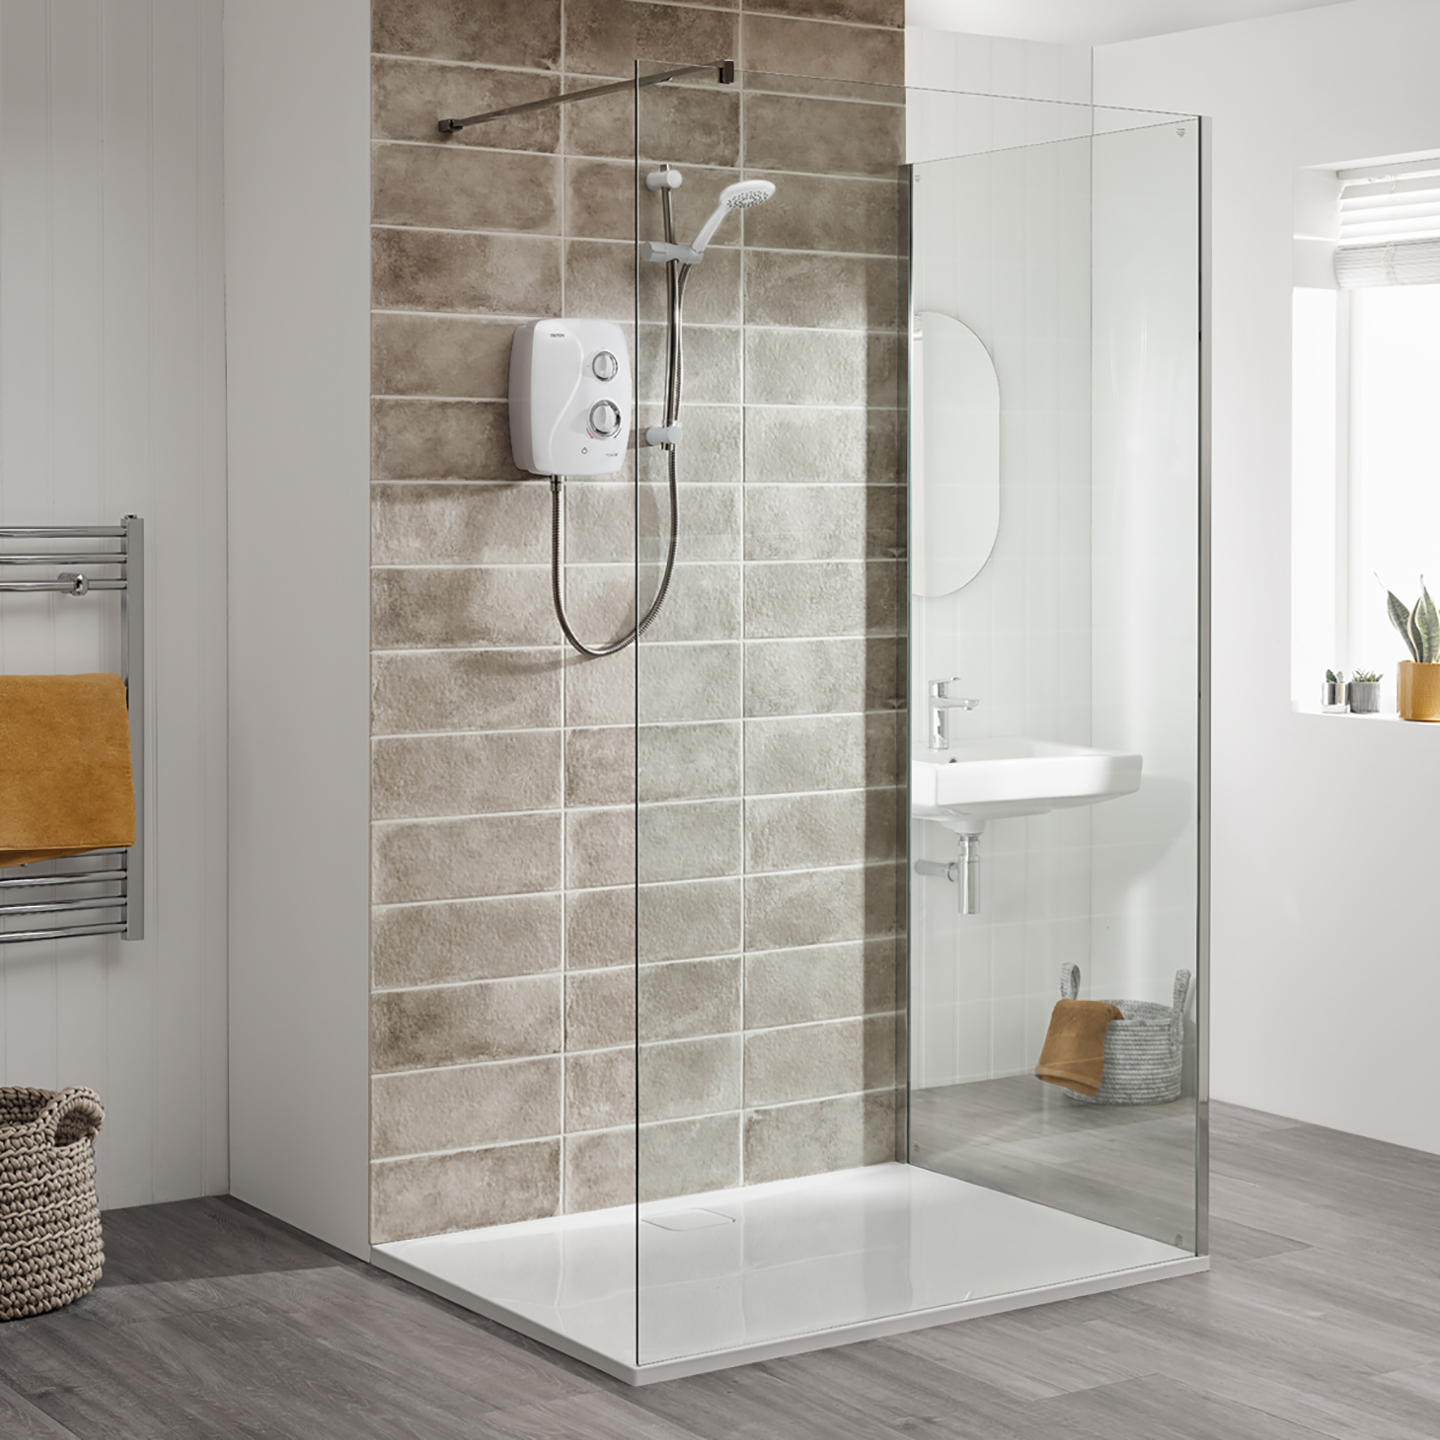 Novel SR - Silent Running Power Shower